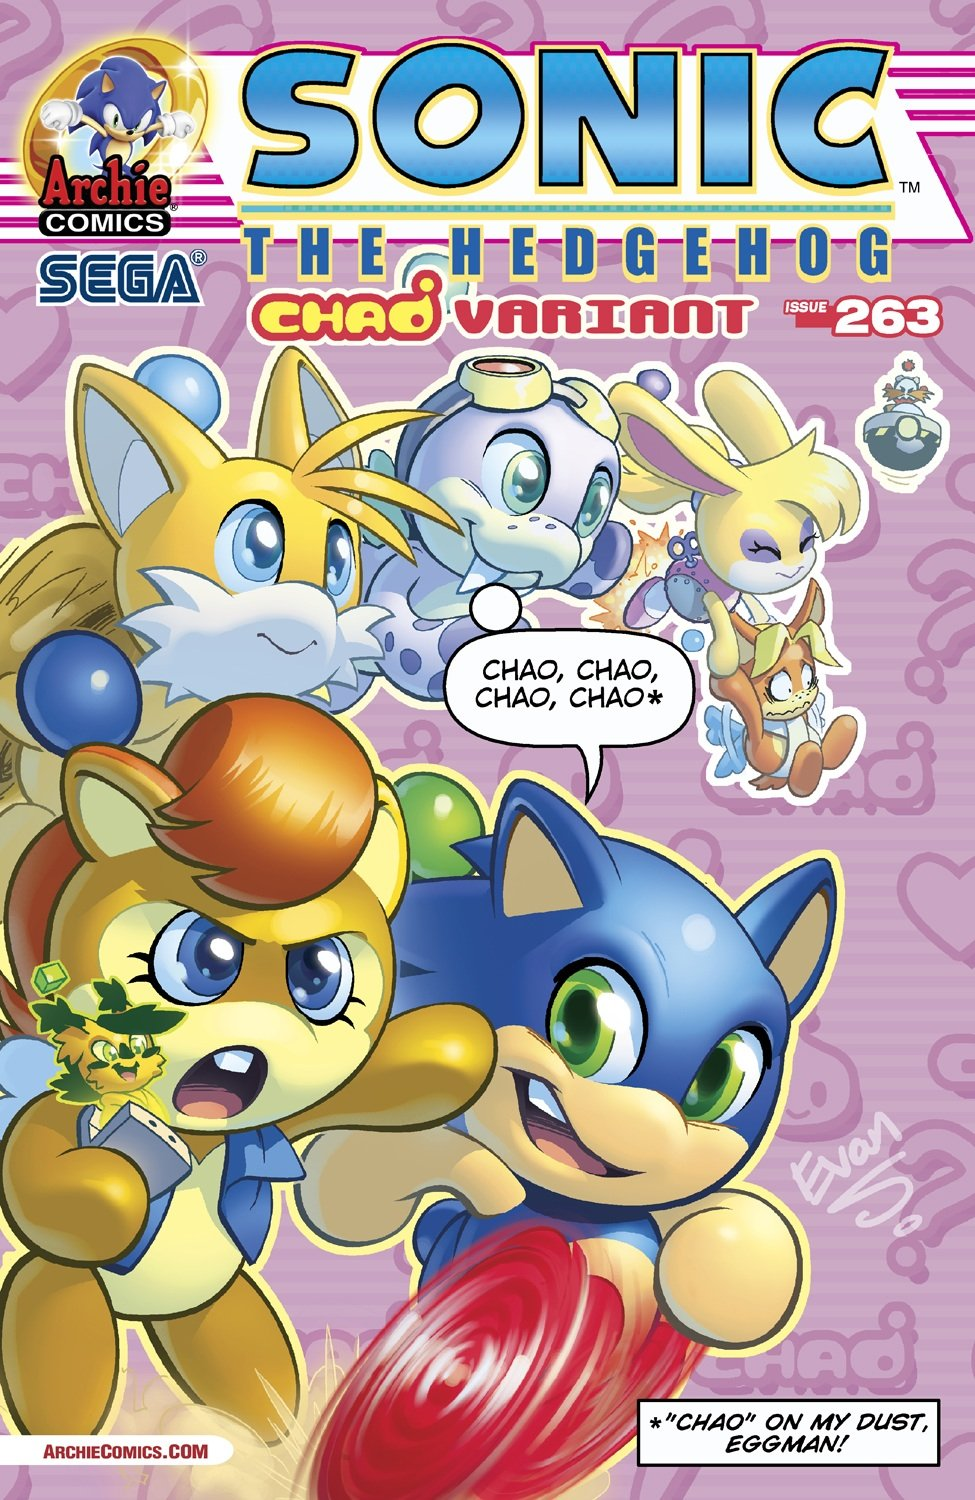 Sonic the Hedgehog 263 (October 2014) (variant edition)